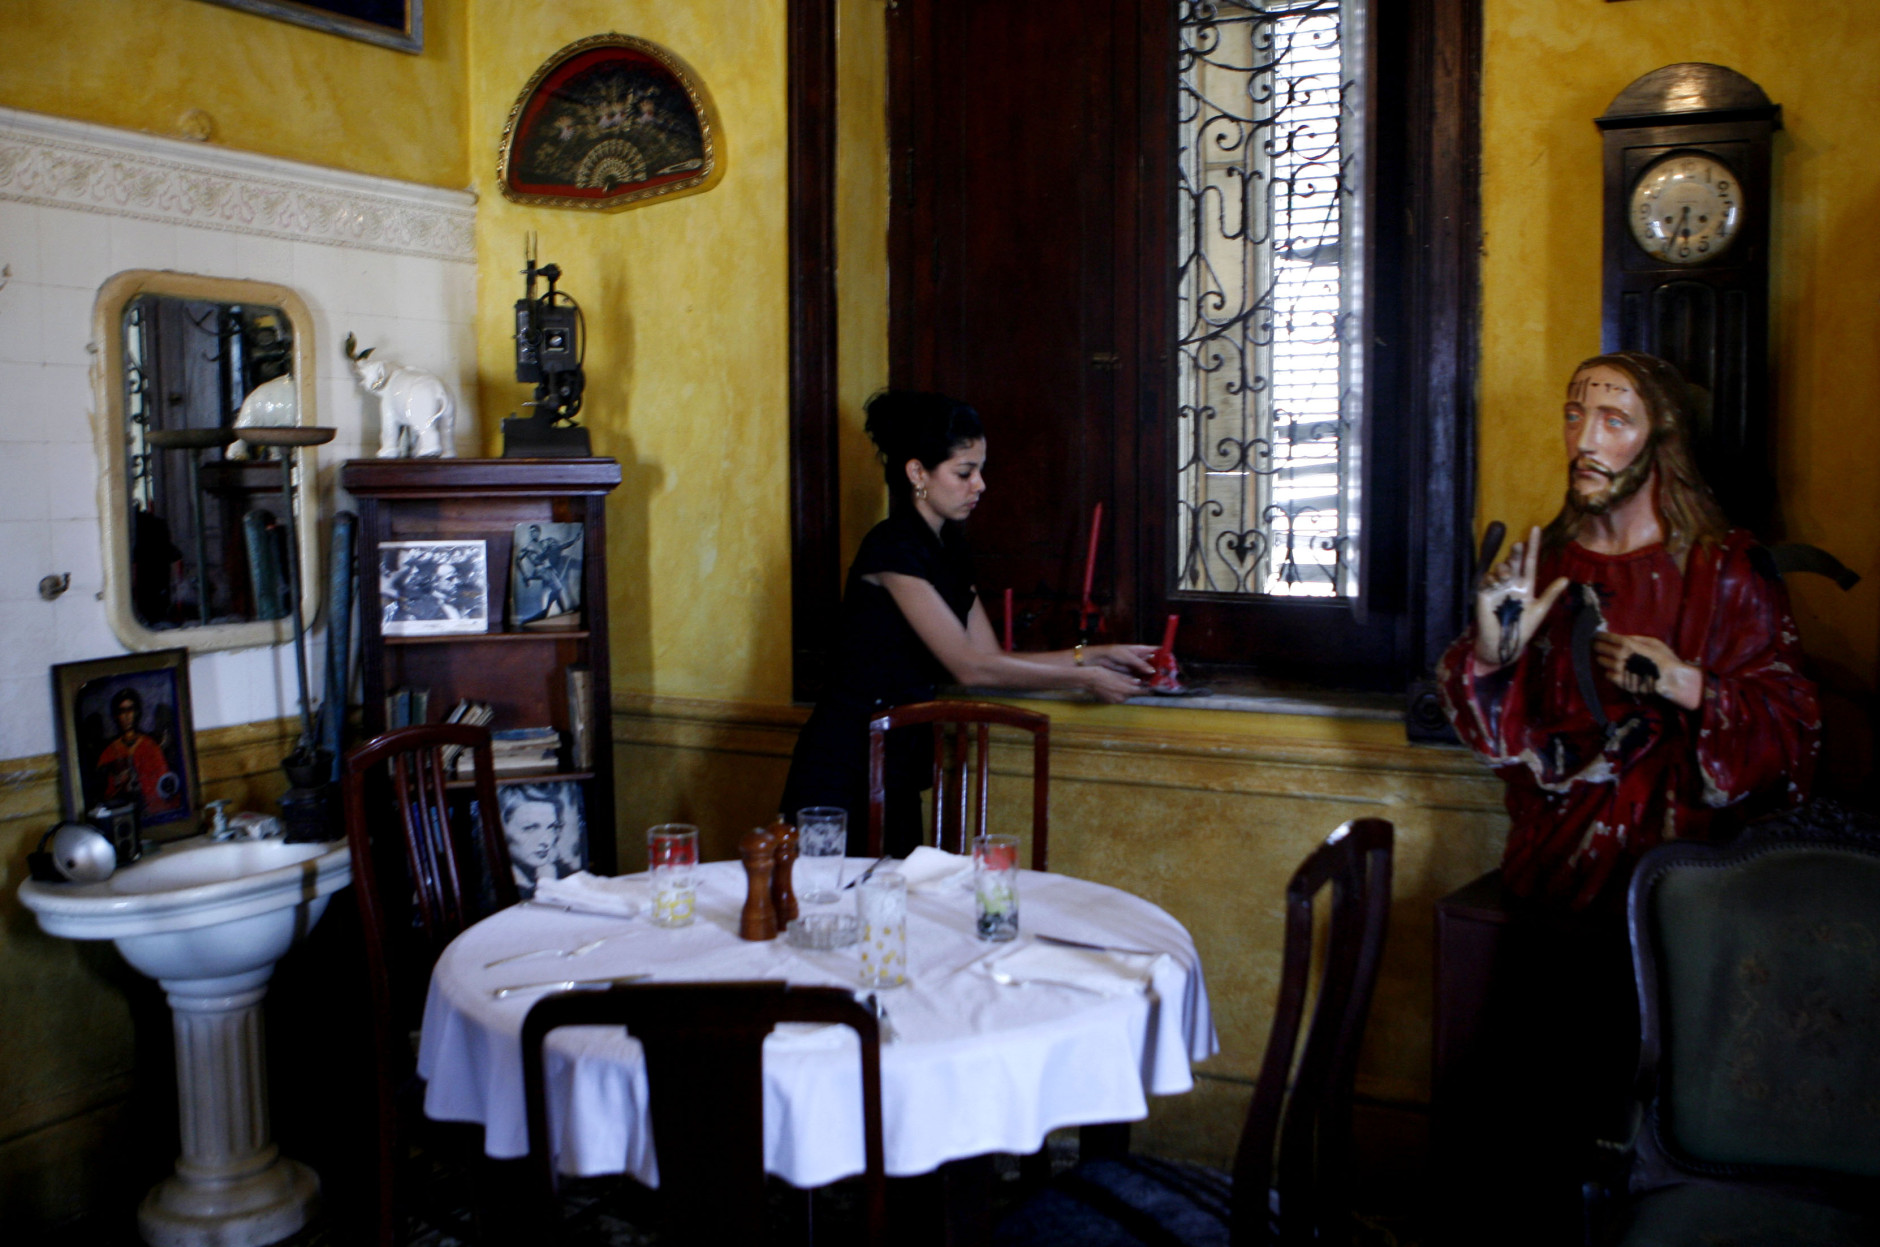 A worker gets ready to attend customers in La Guarida, Havana's best known paladar, or private restaurant, in Havana, Monday, March 10, 2008.  (AP Photo/Javier Galeano)